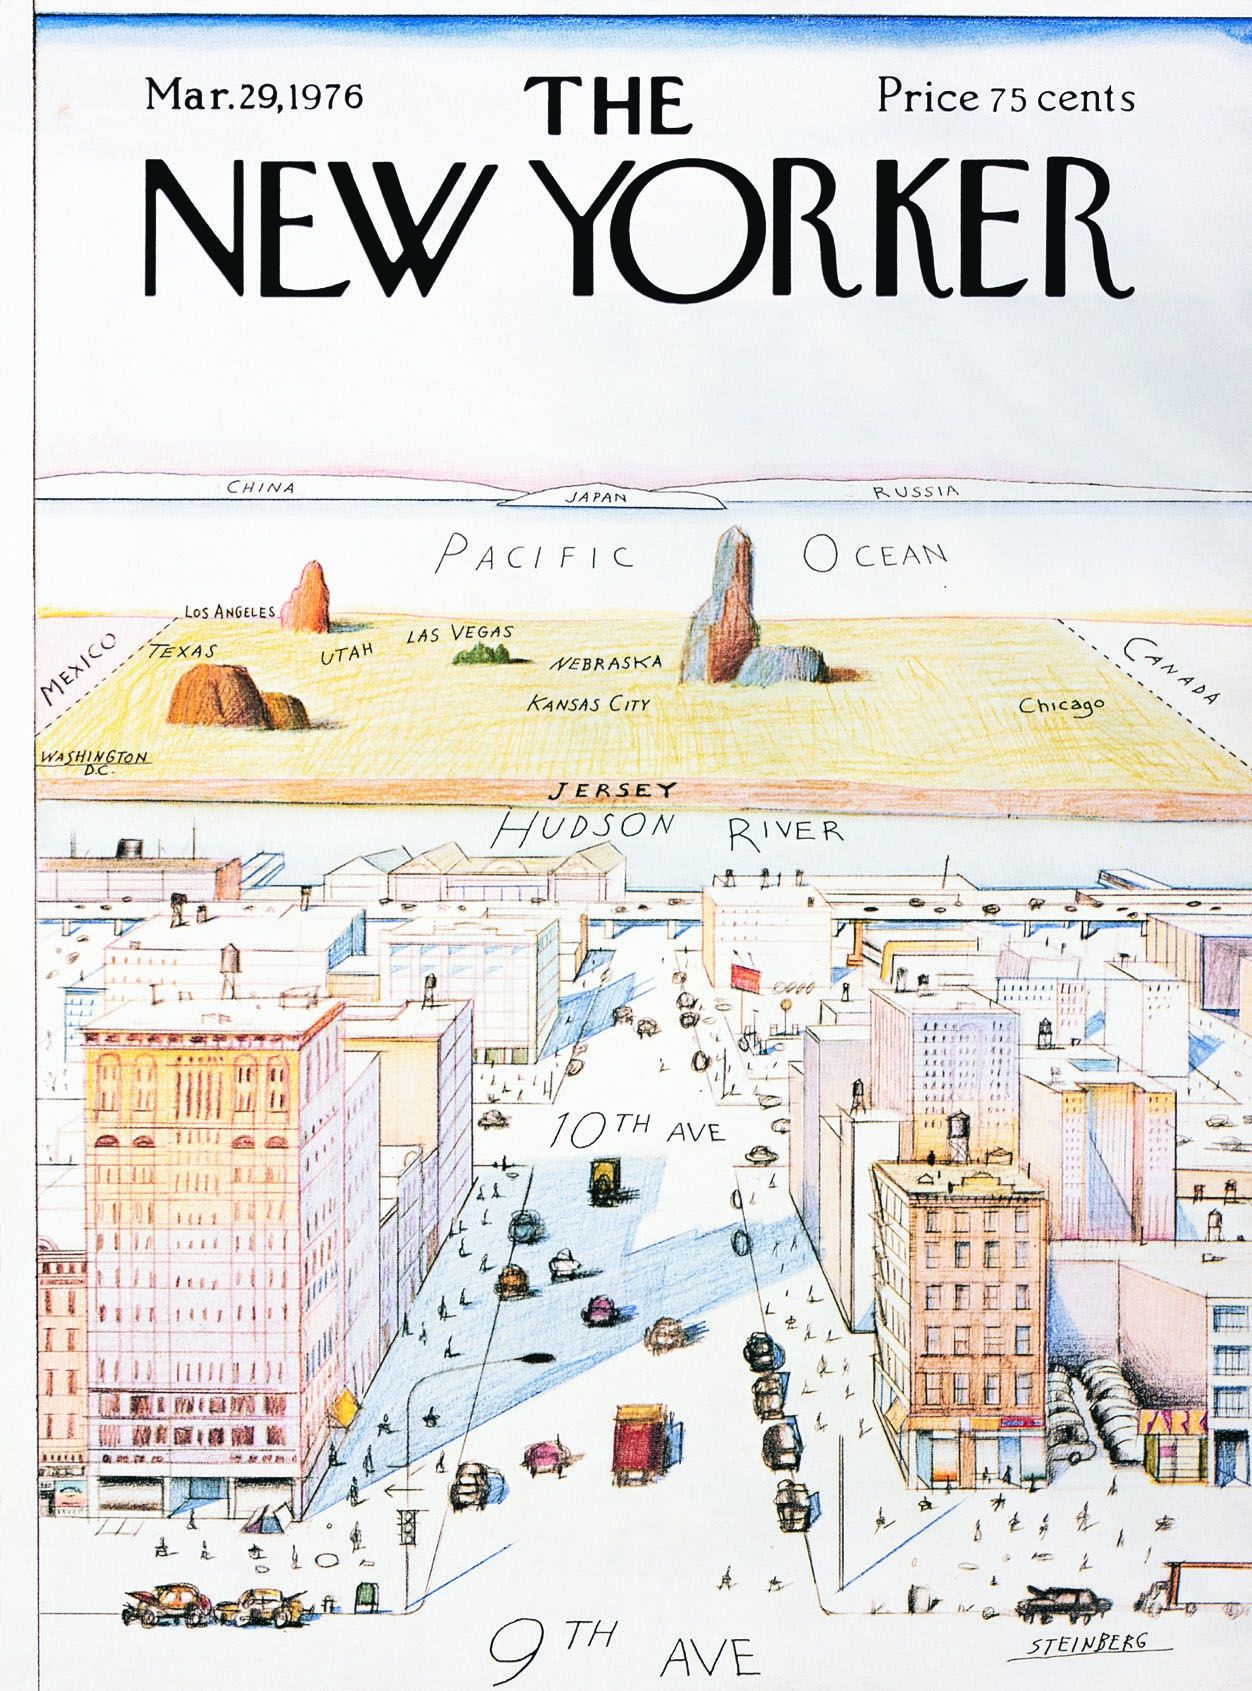 20 Iconic New Yorker Covers | Literary Hub